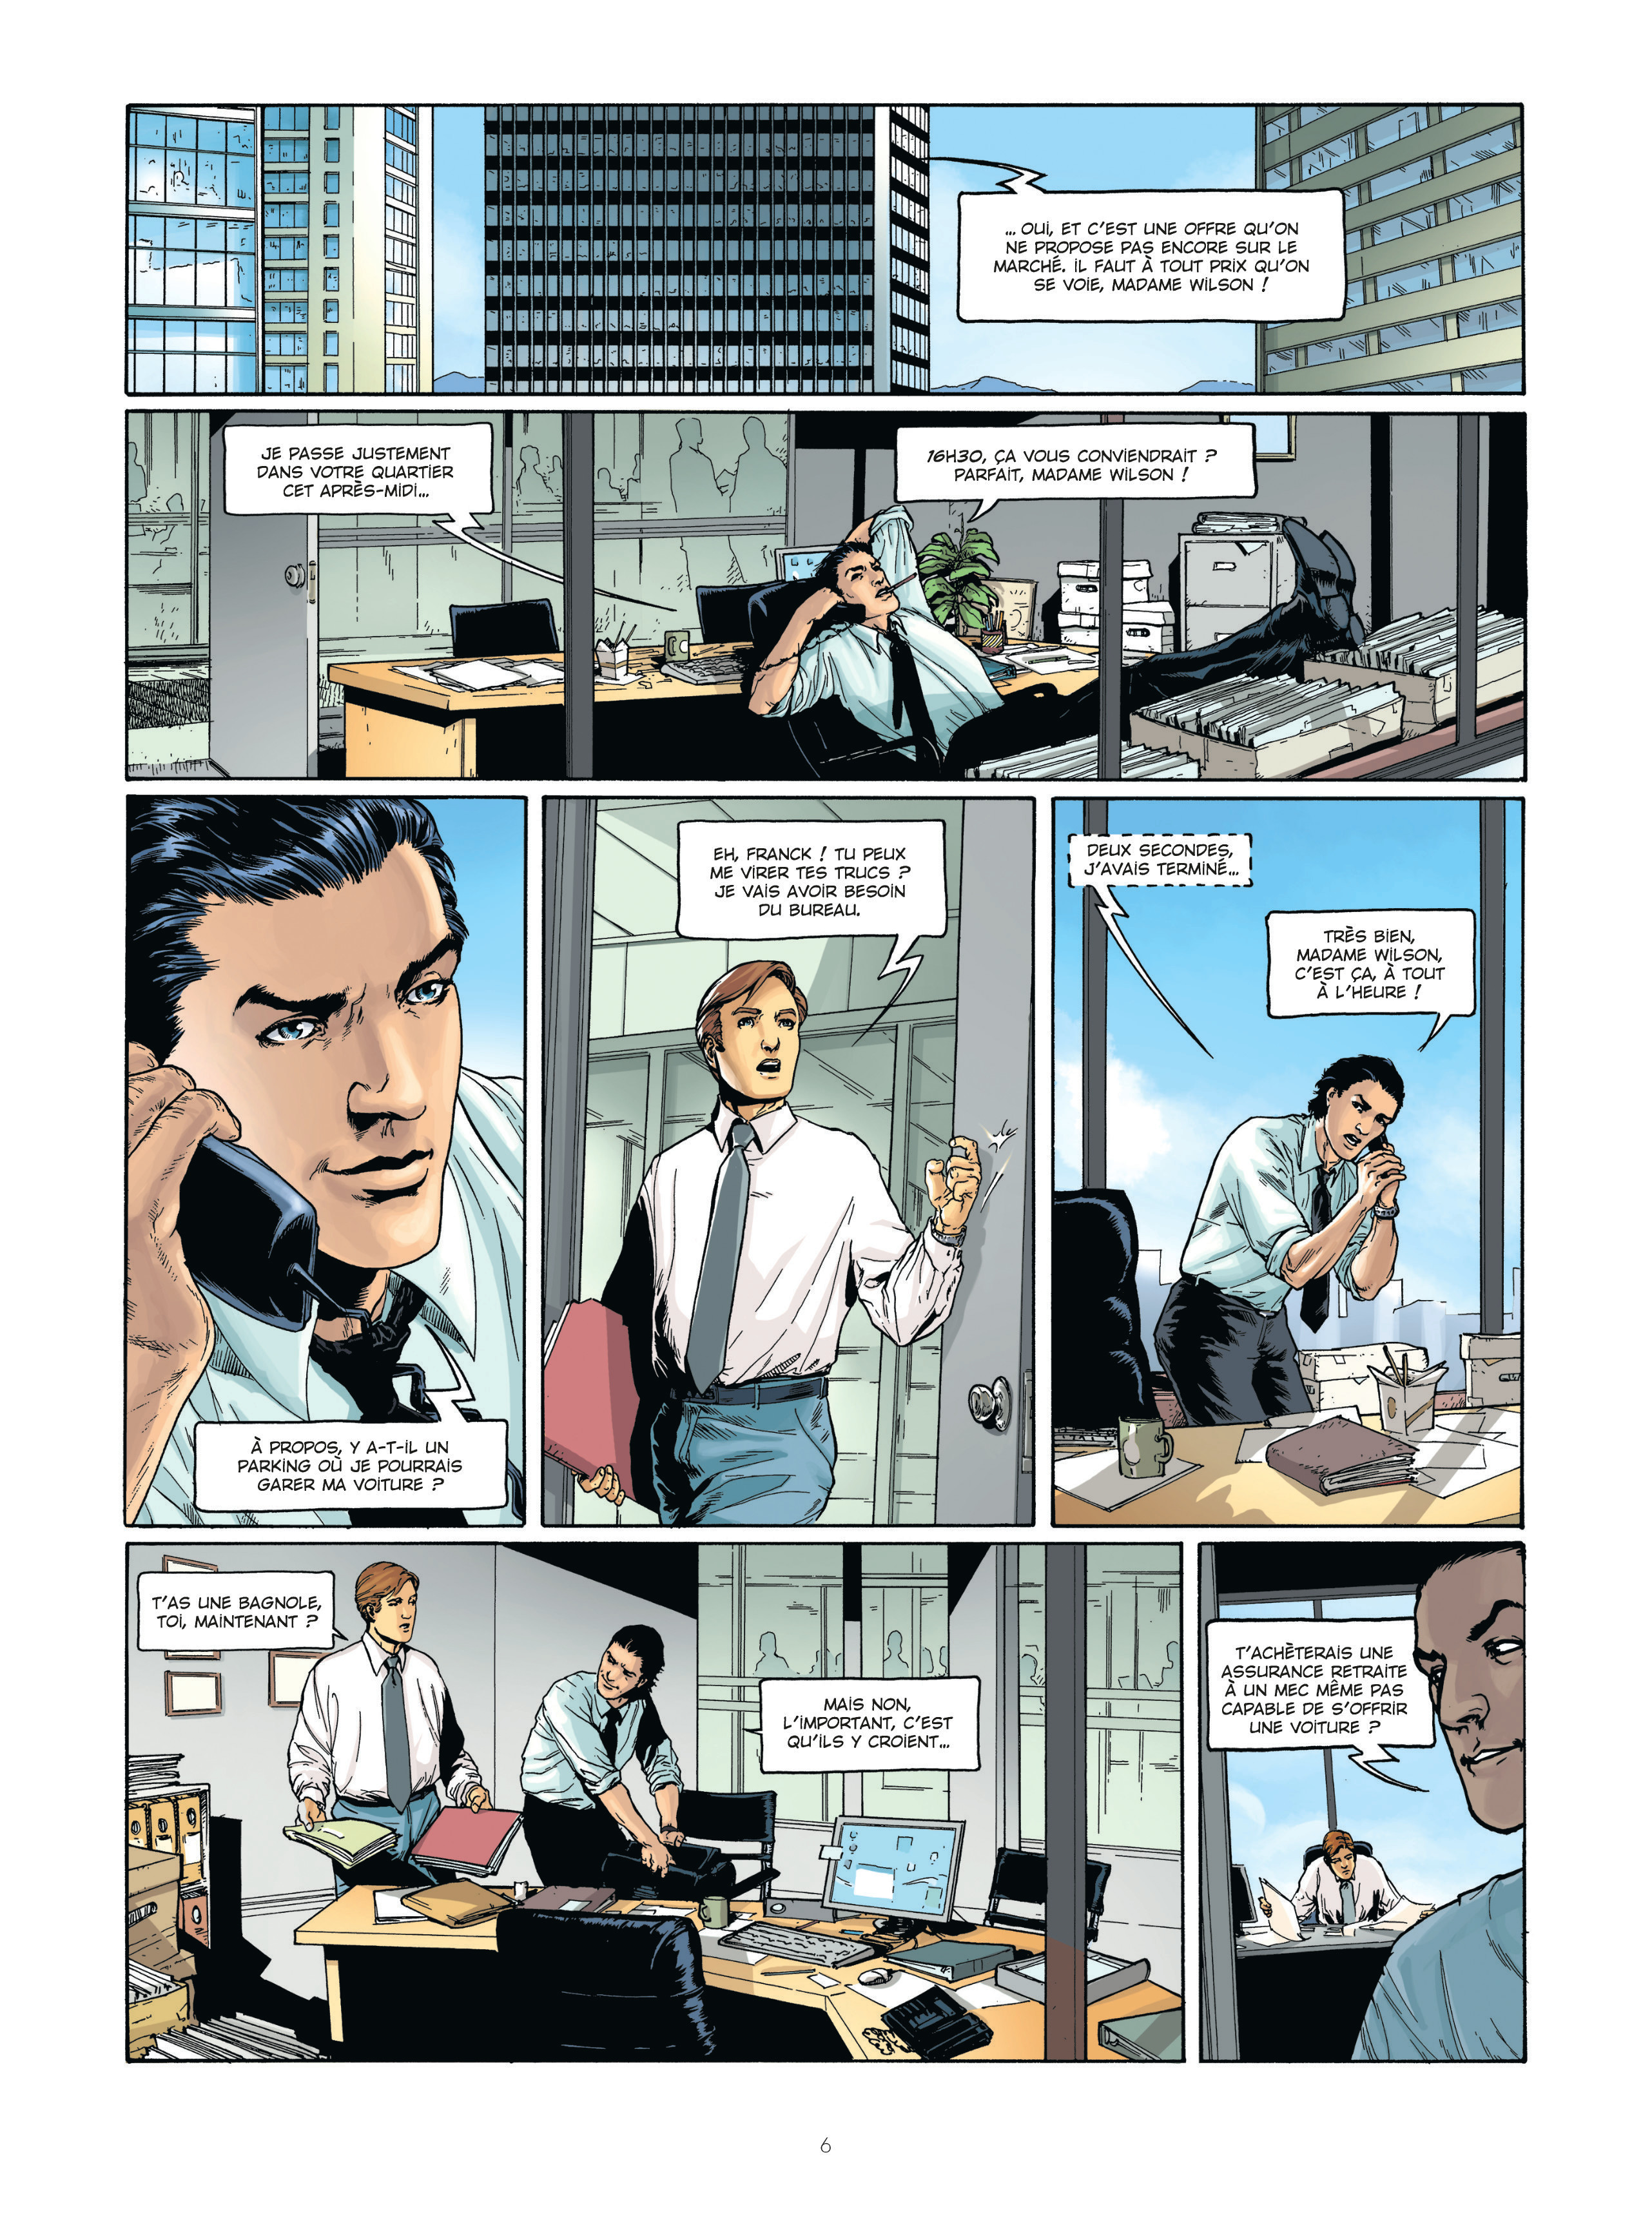 hedge_fund#1_Page 6